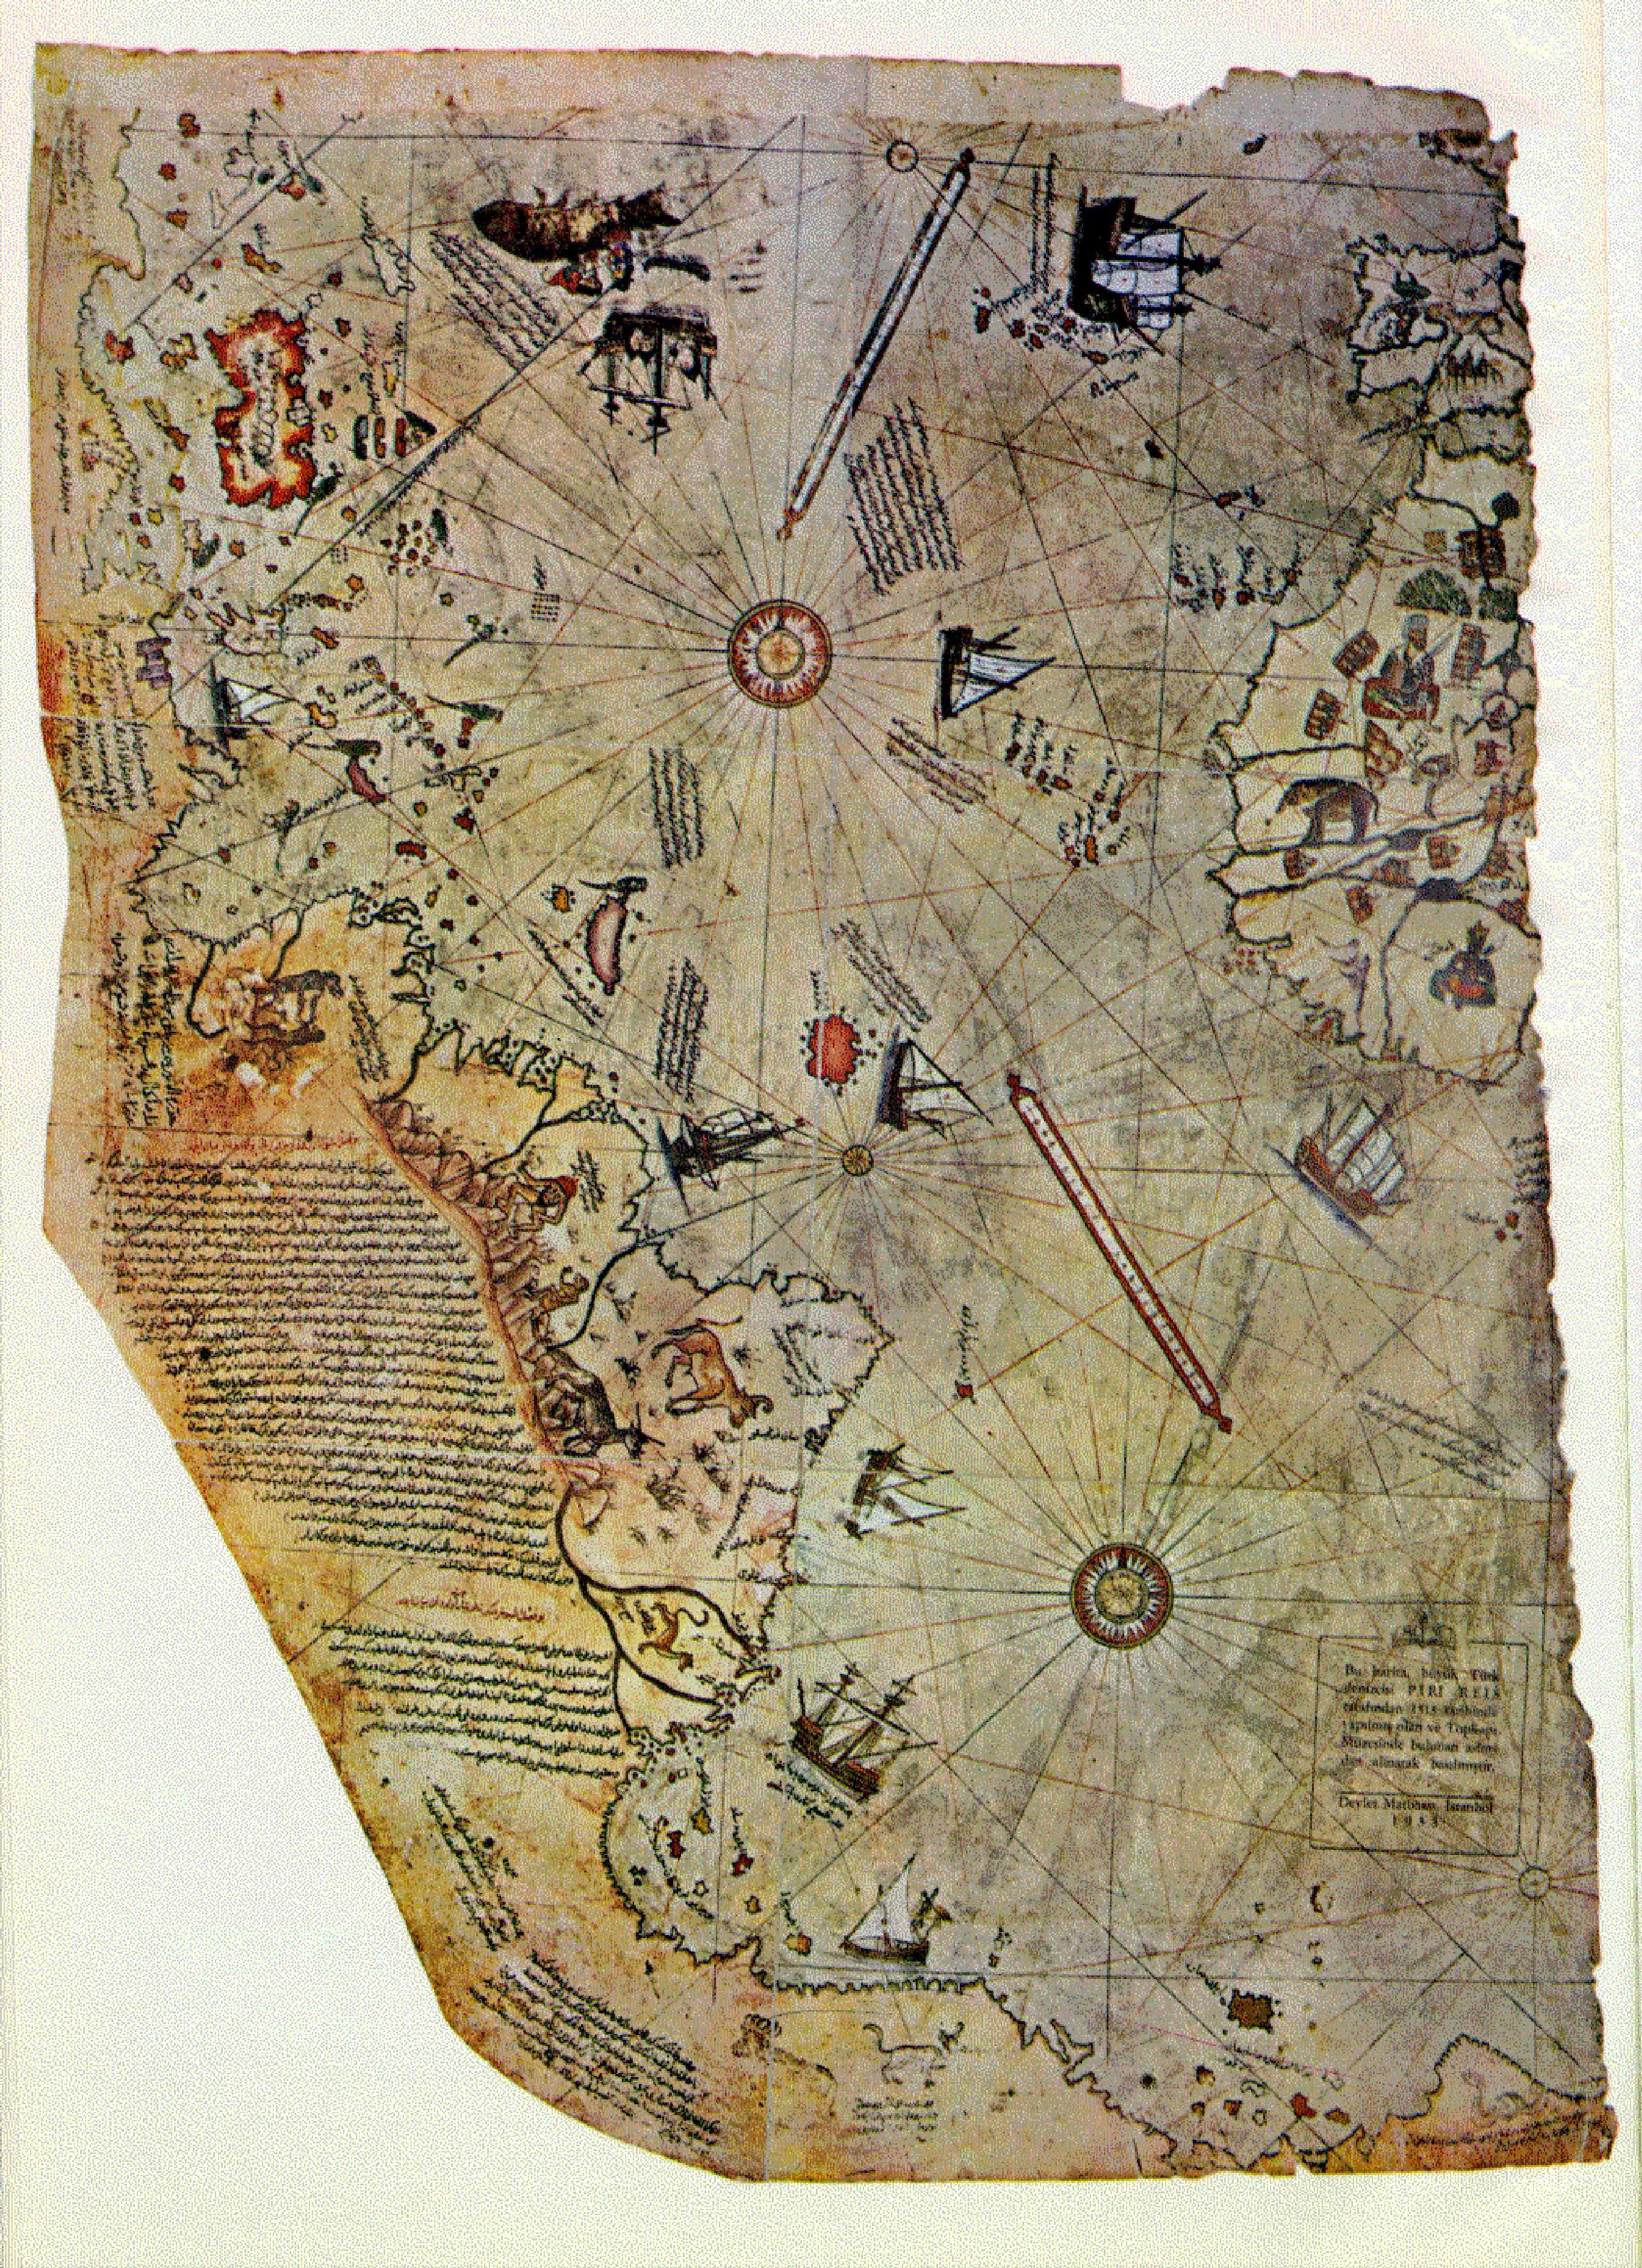 Pin by GEOINT.wiki on GEOINT: Antique Maps | Piri reis map, Map ...